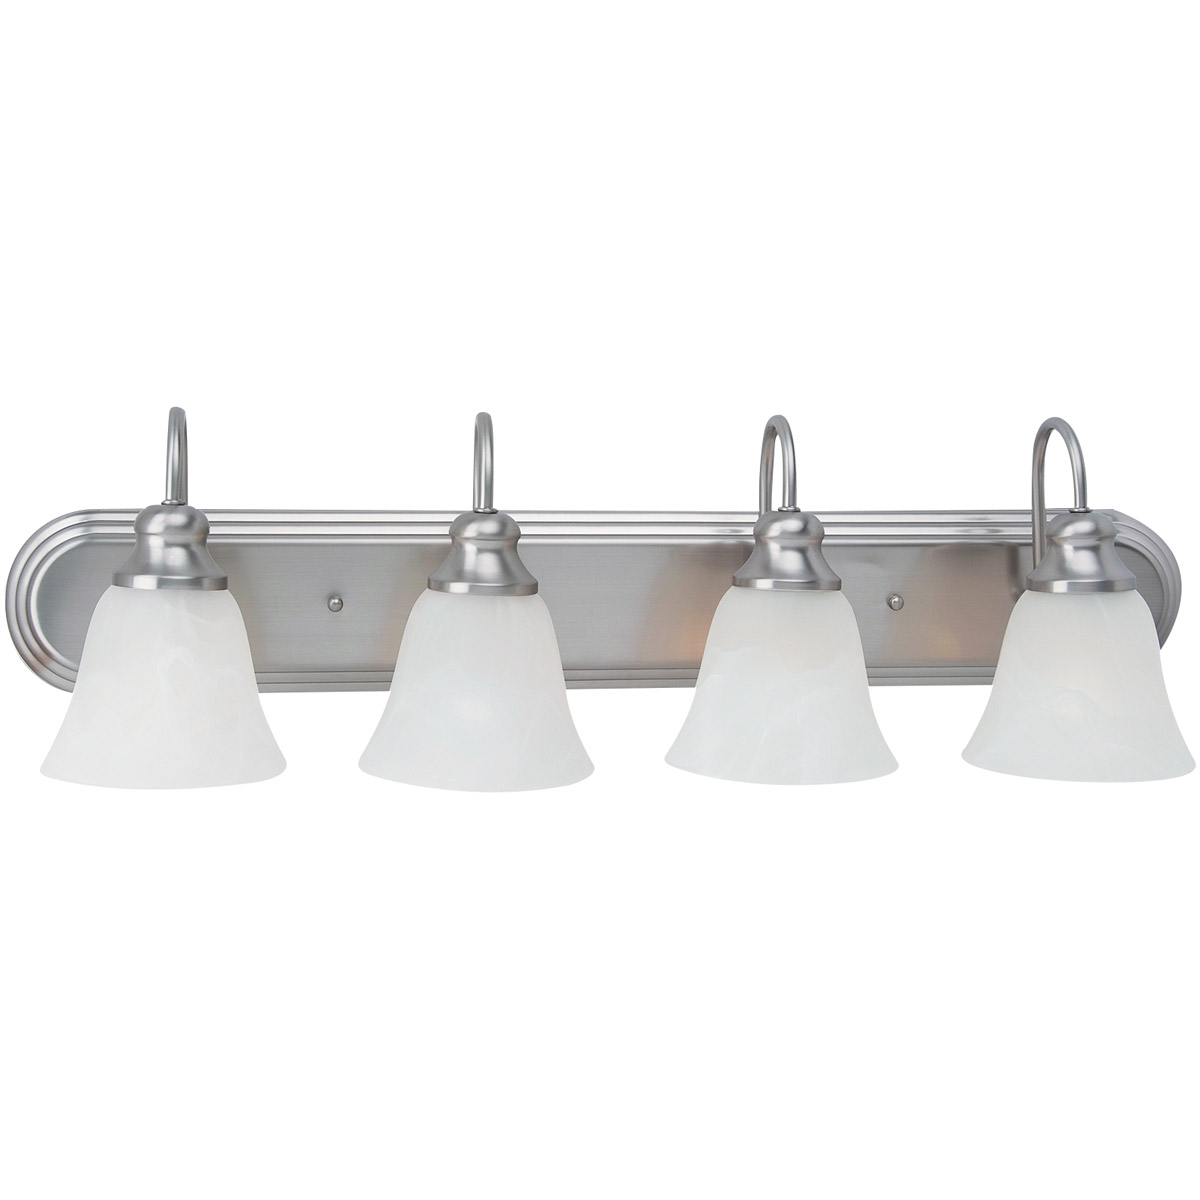 Sea Gull 44942-962 Windgate 4 Light 30 inch Brushed Nickel Bath Vanity Wall Light in Standard photo